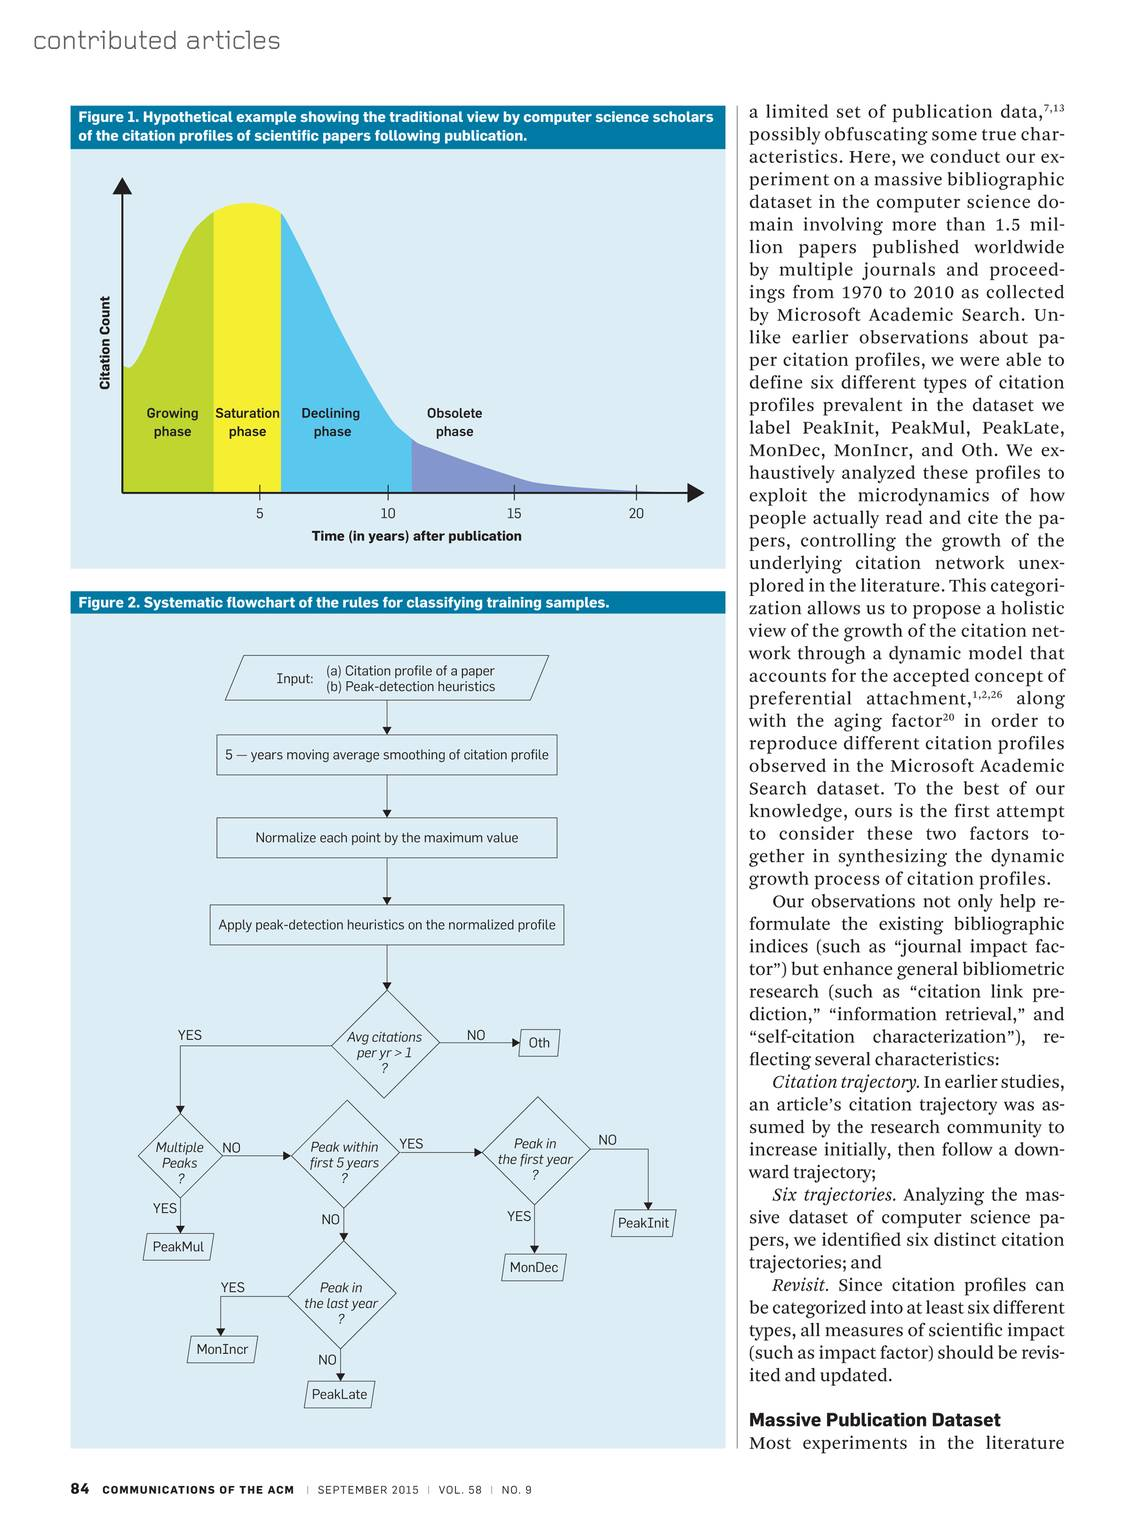 Communications of the ACM - September 2015 - page 83